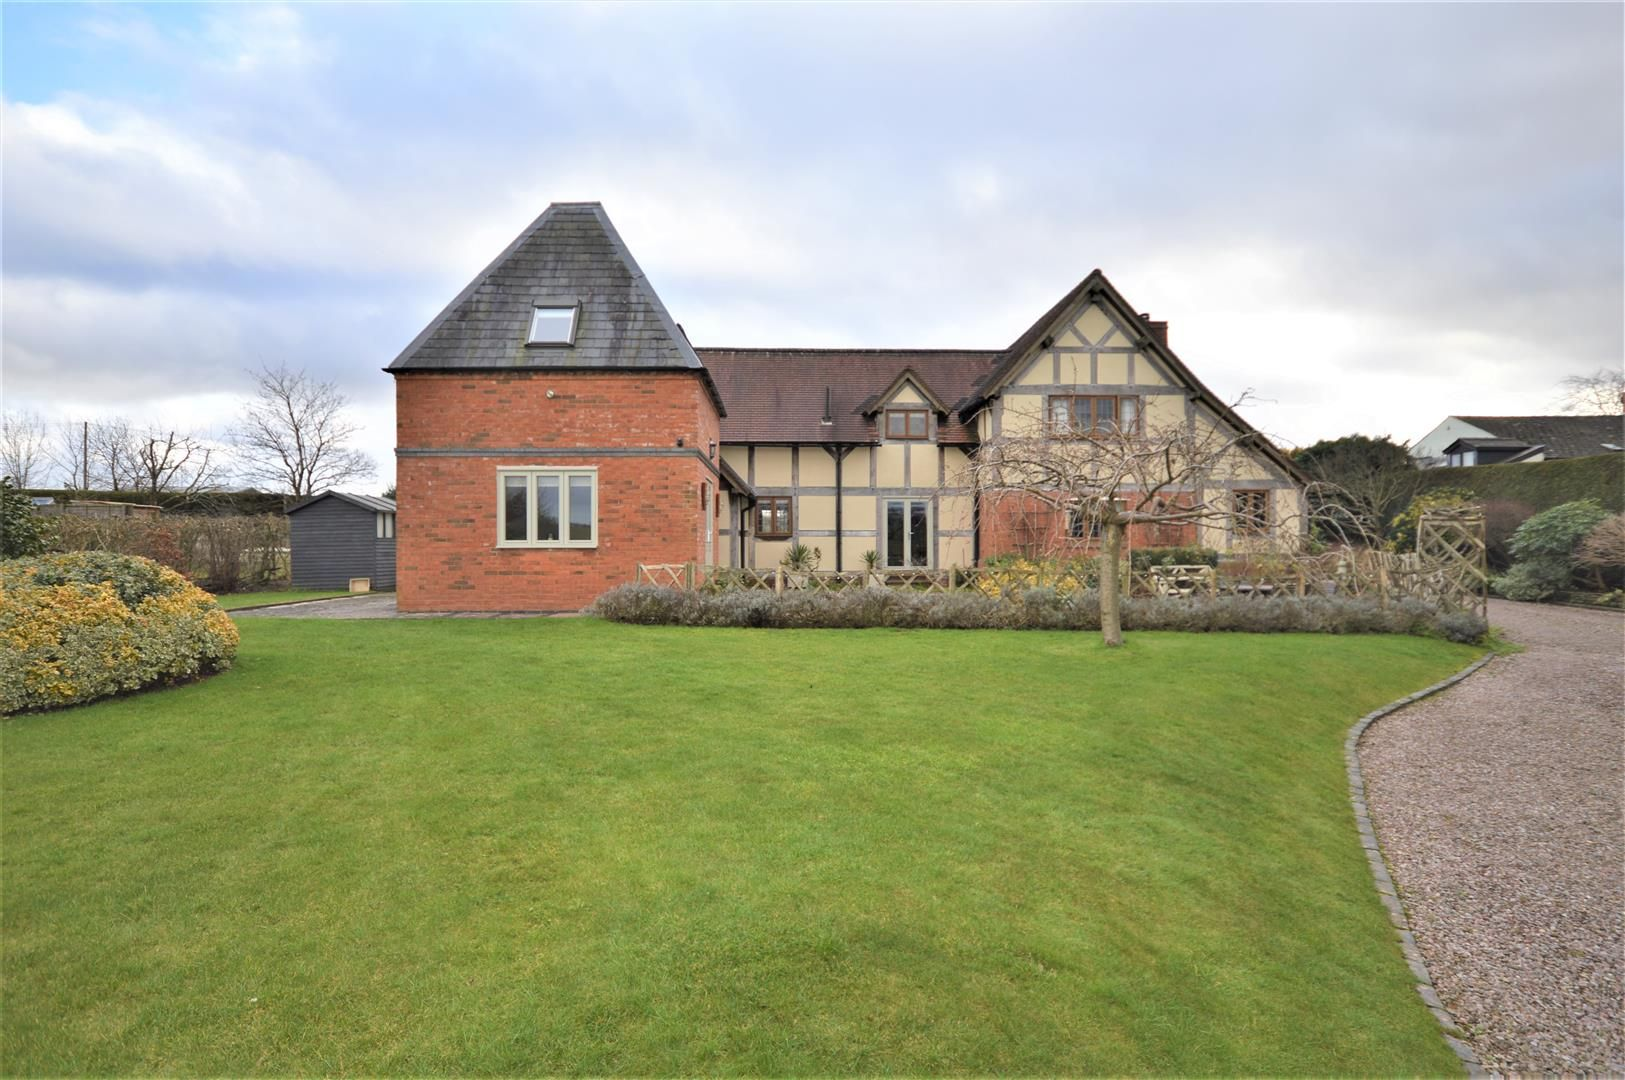 4 bed detached for sale in Marden 29